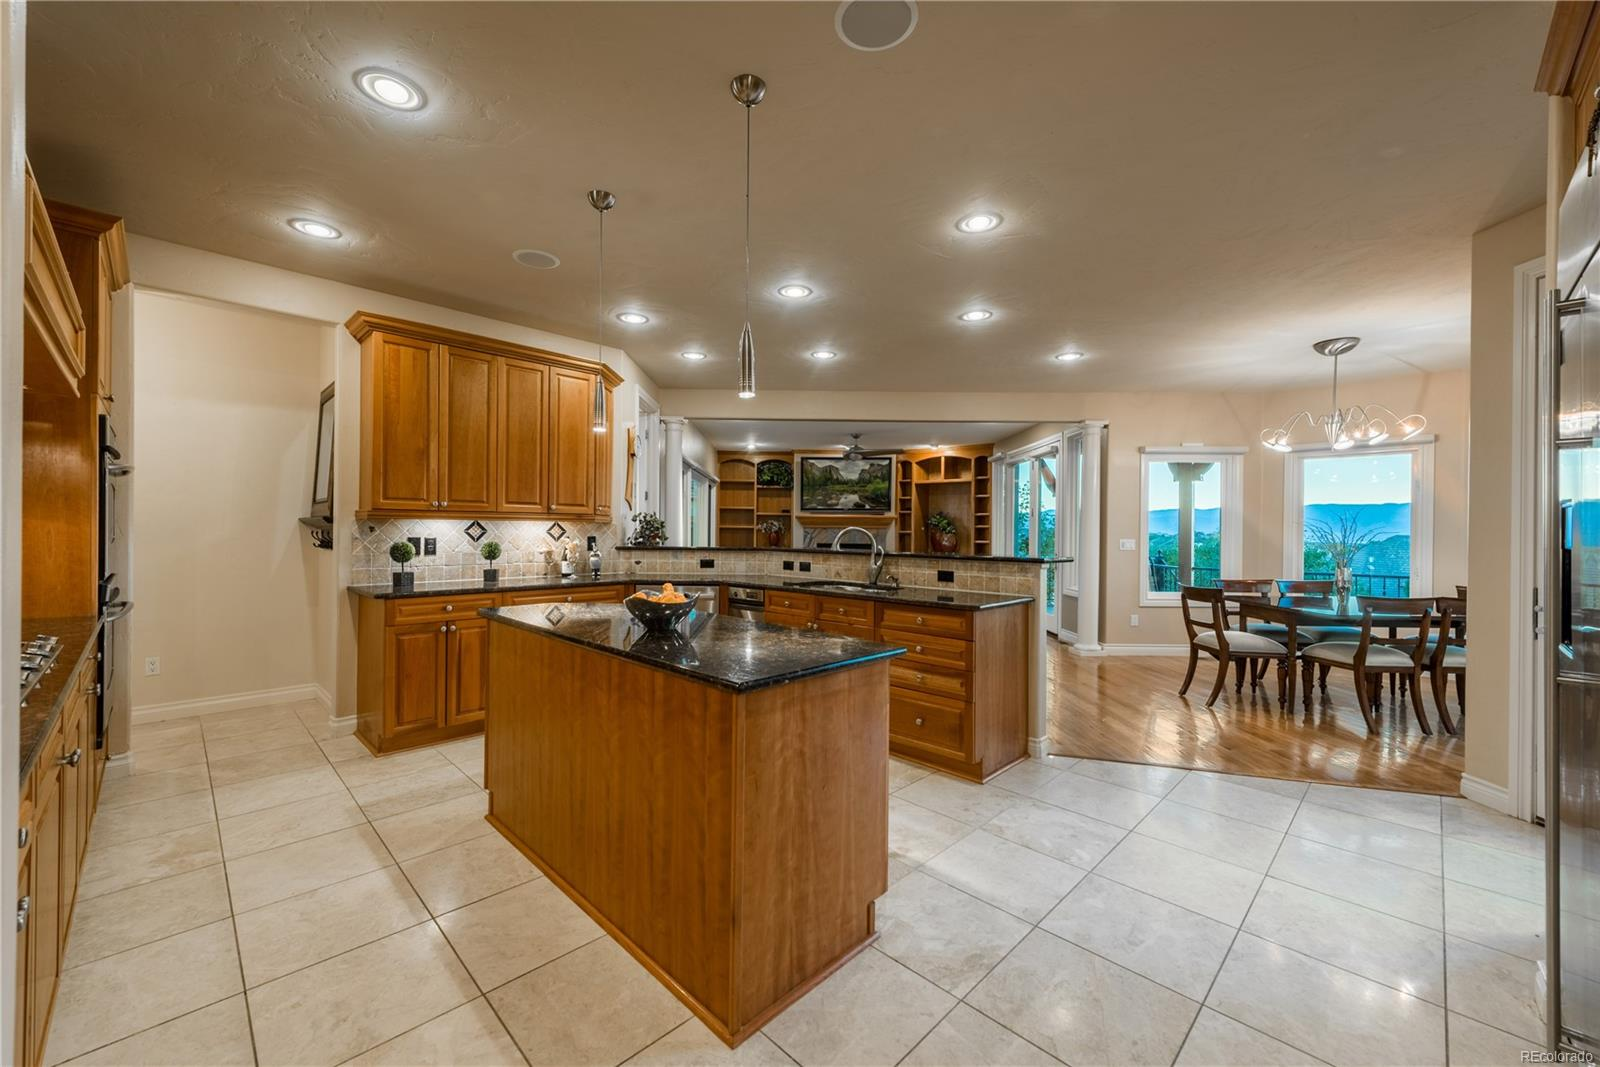 Kitchen is open to nook area and family room with beautiful views.